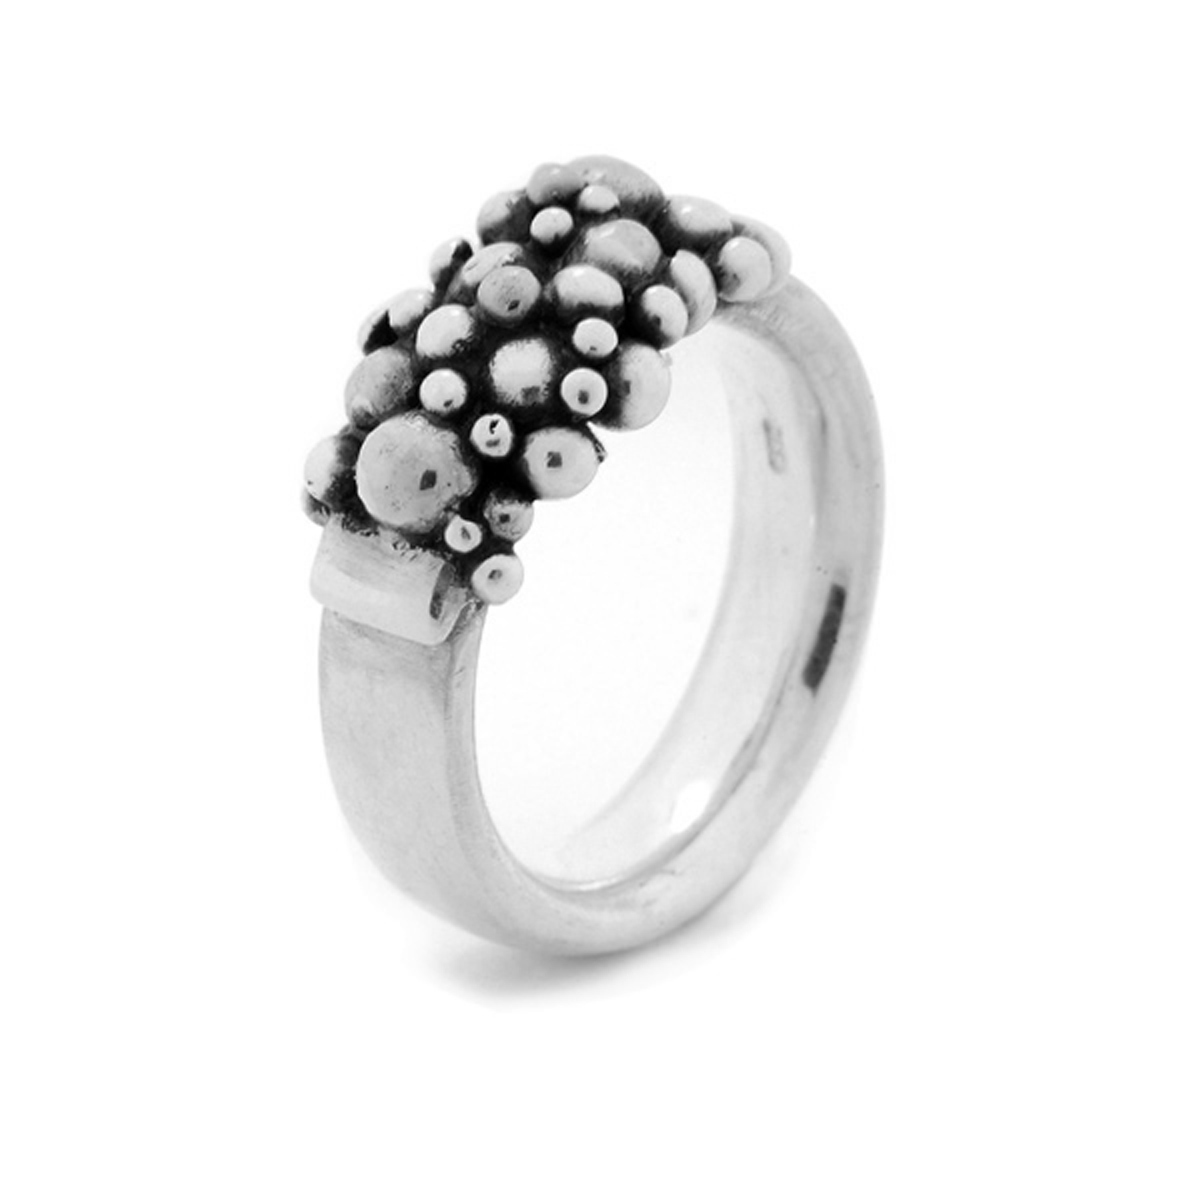 Molecule semi ring silver